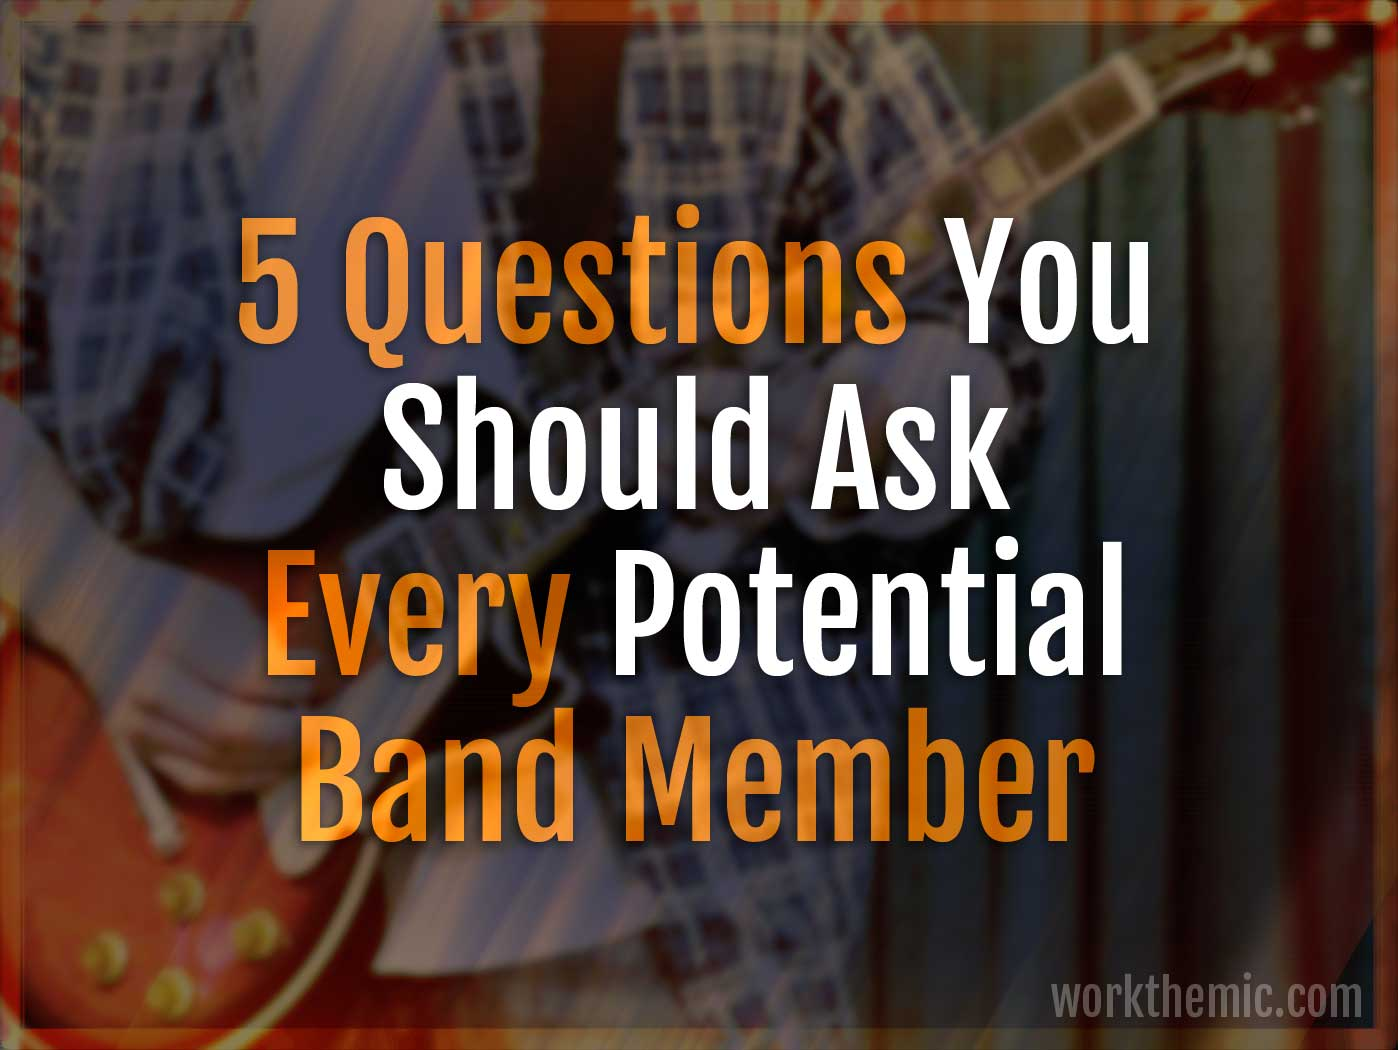 5 questions to ask every potential band member